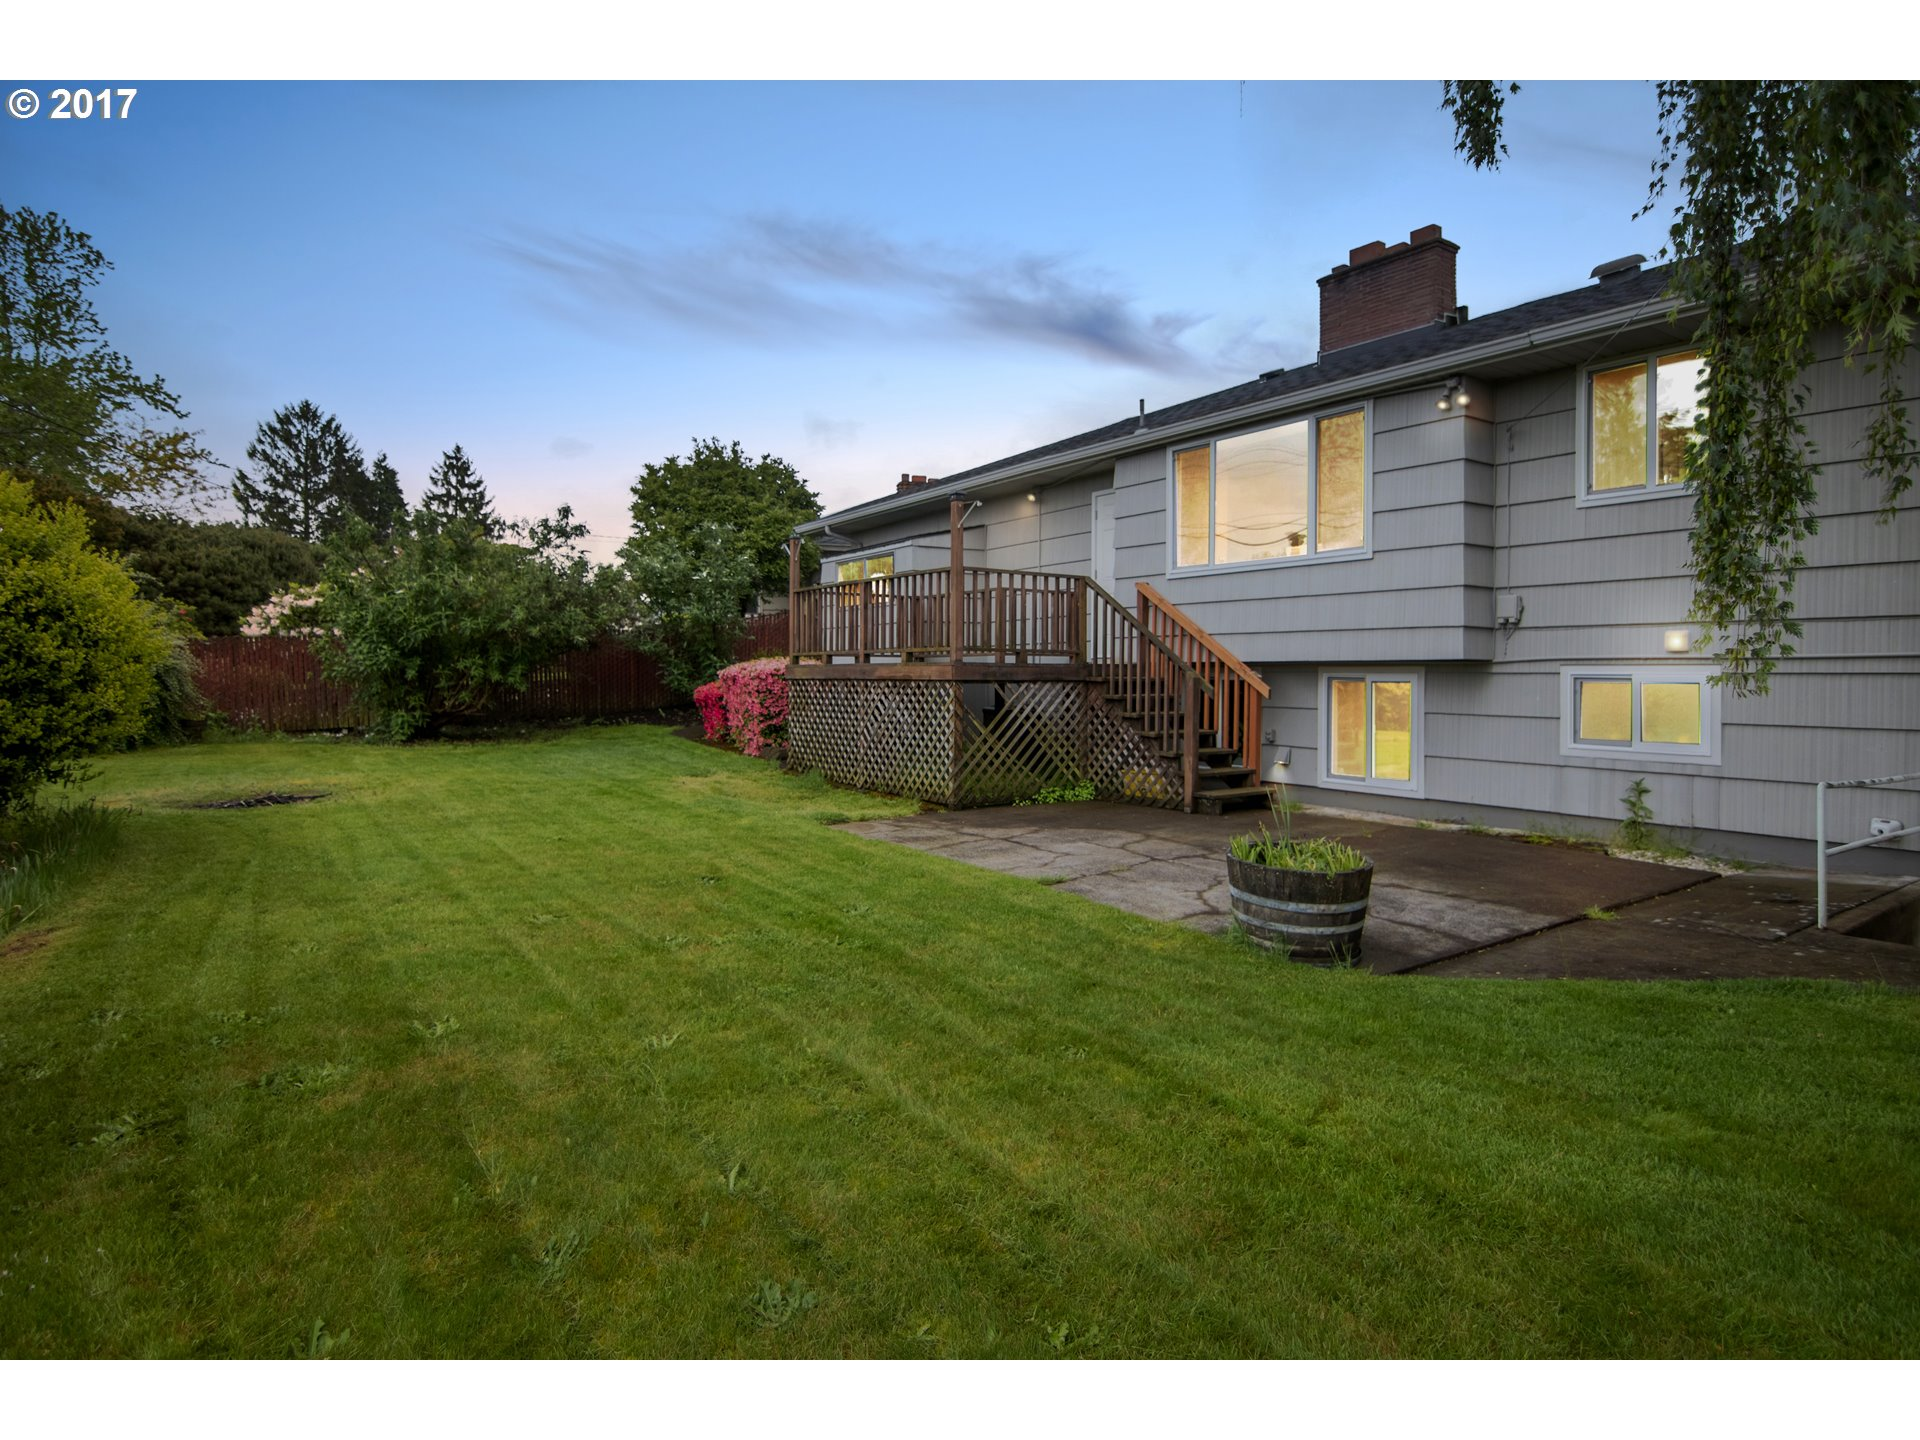 10235 SE HARRISON ST Portland, OR 97216 - MLS #: 17086957